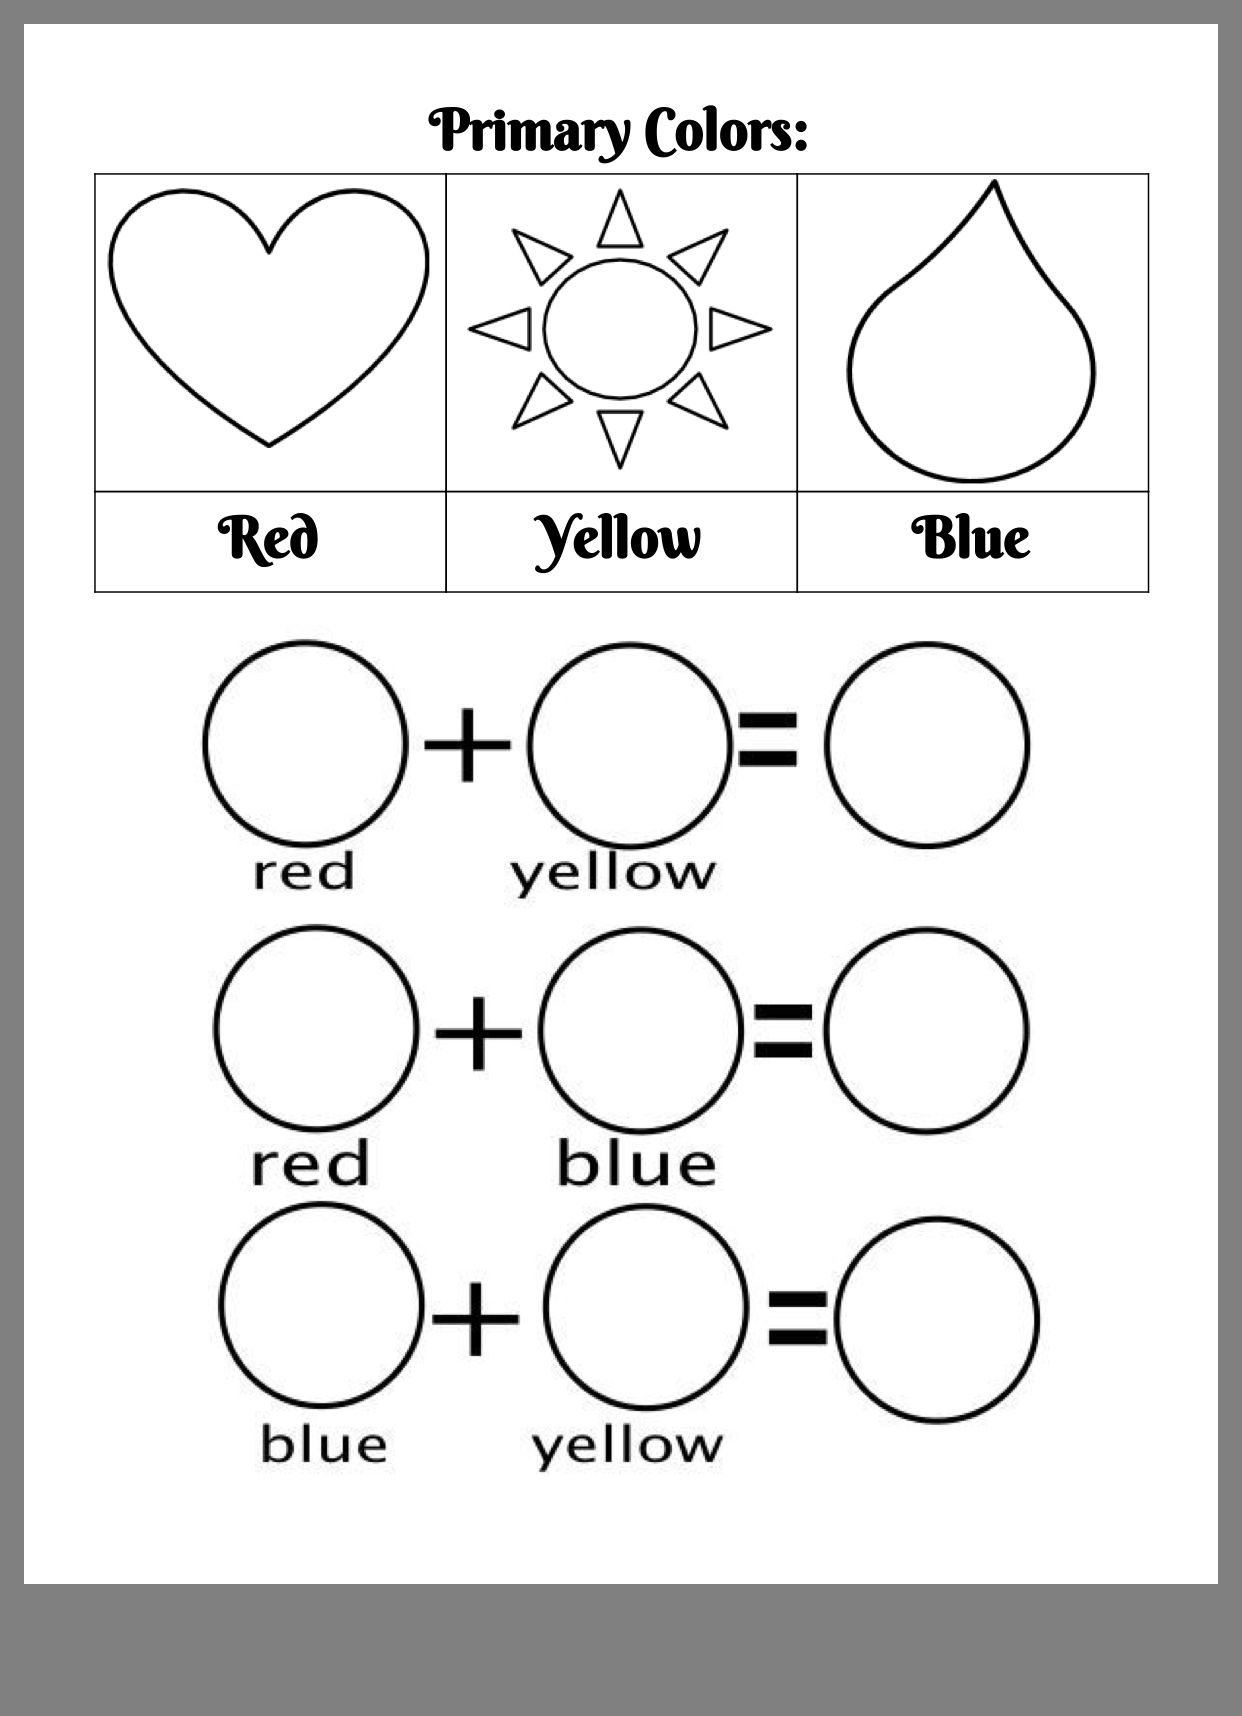 Pin By Swan Shore Studios On K 1 Kindergarten Colors Mixing Primary Colors Color Worksheets